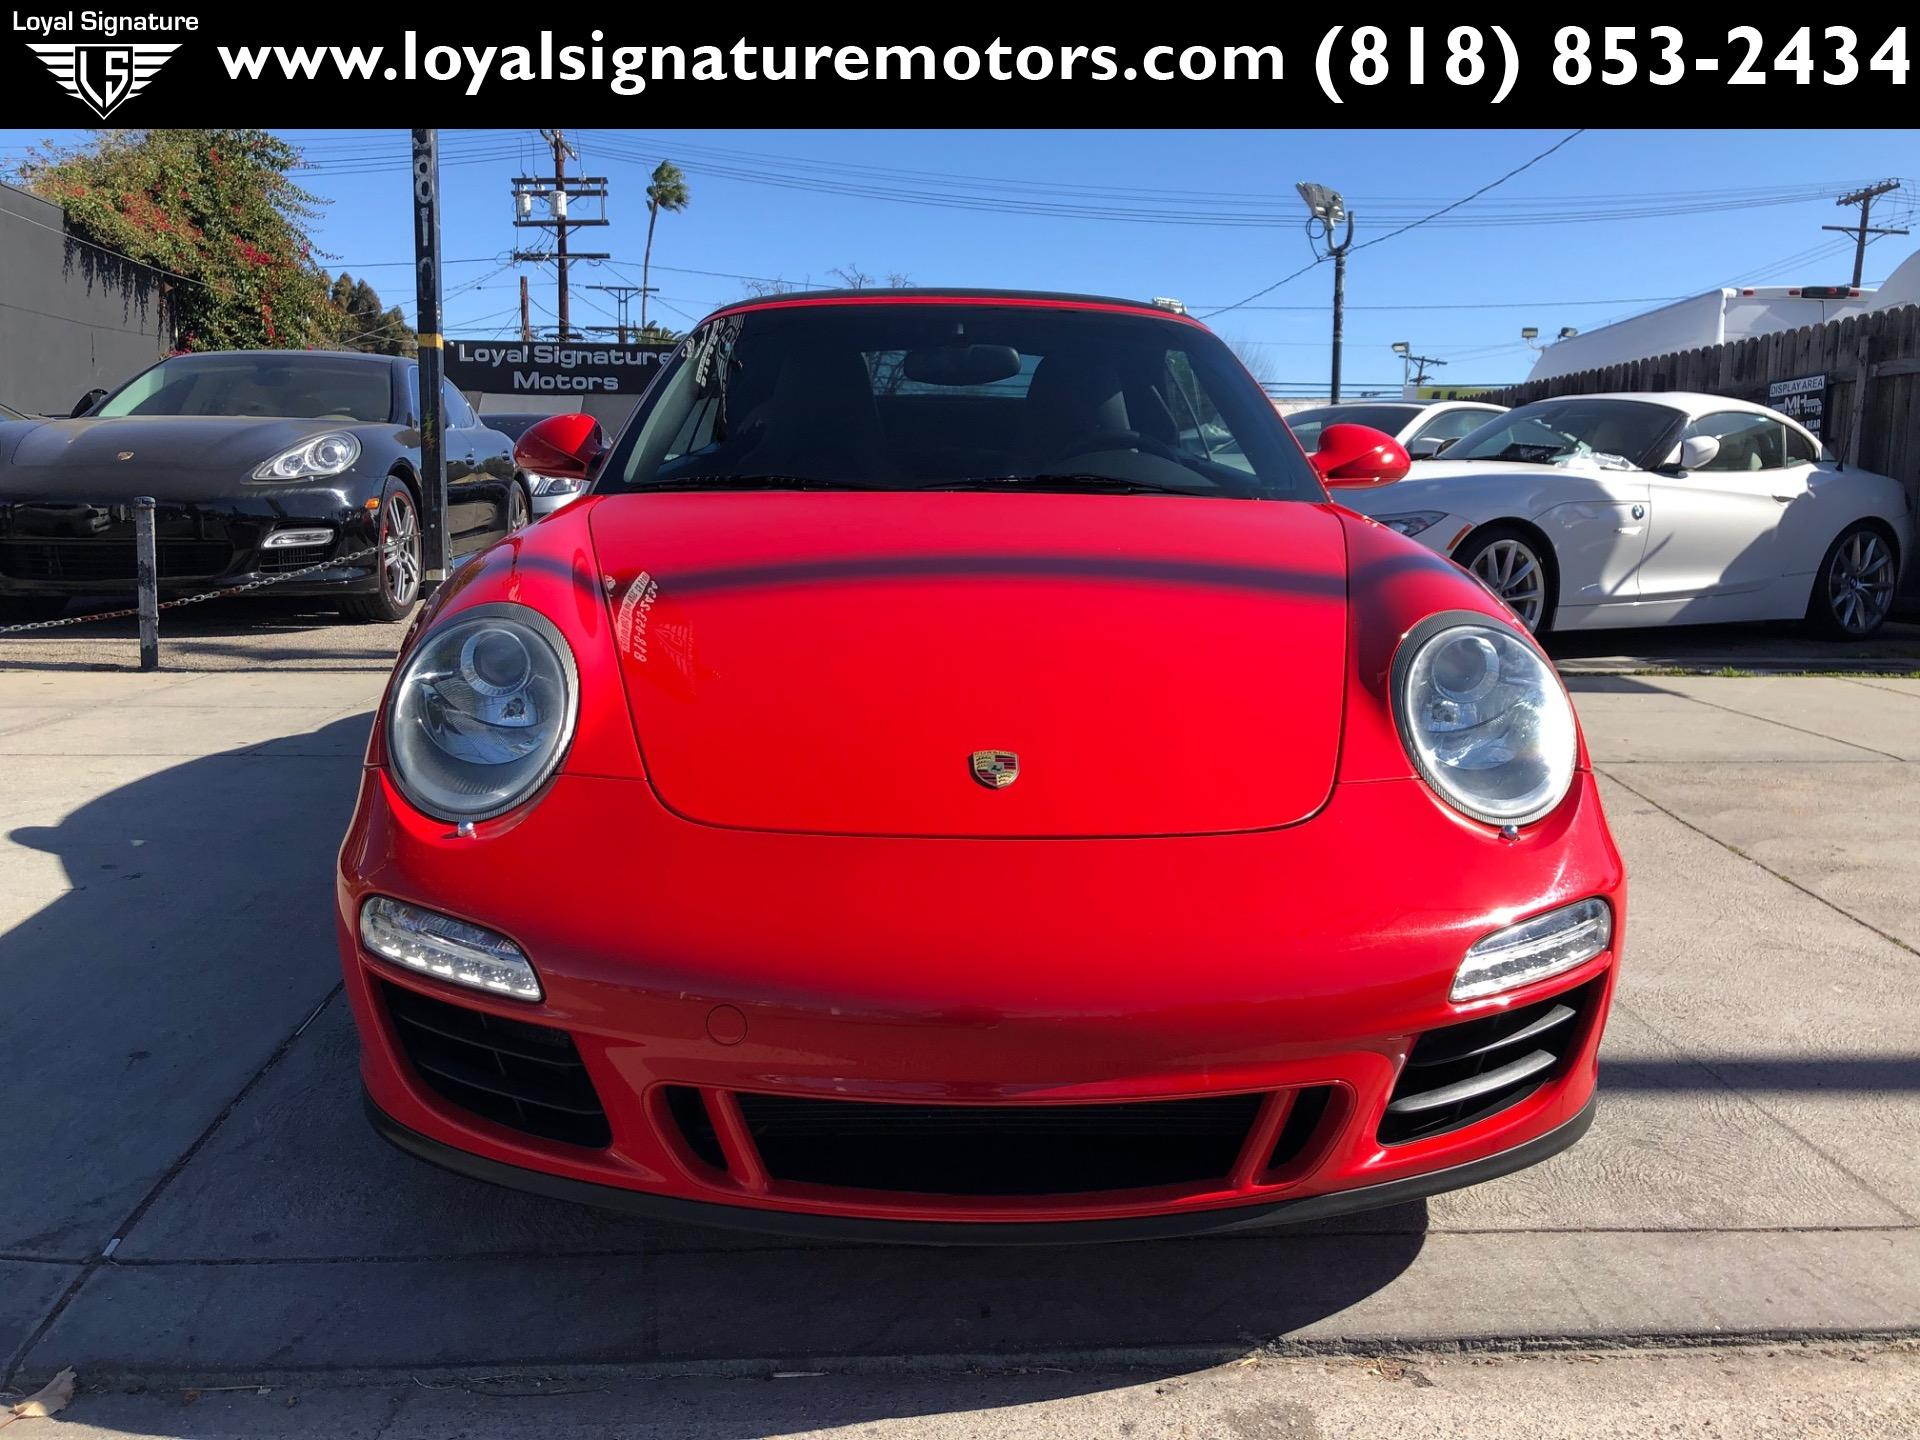 Used-2011-Porsche-911-Carrera-GTS